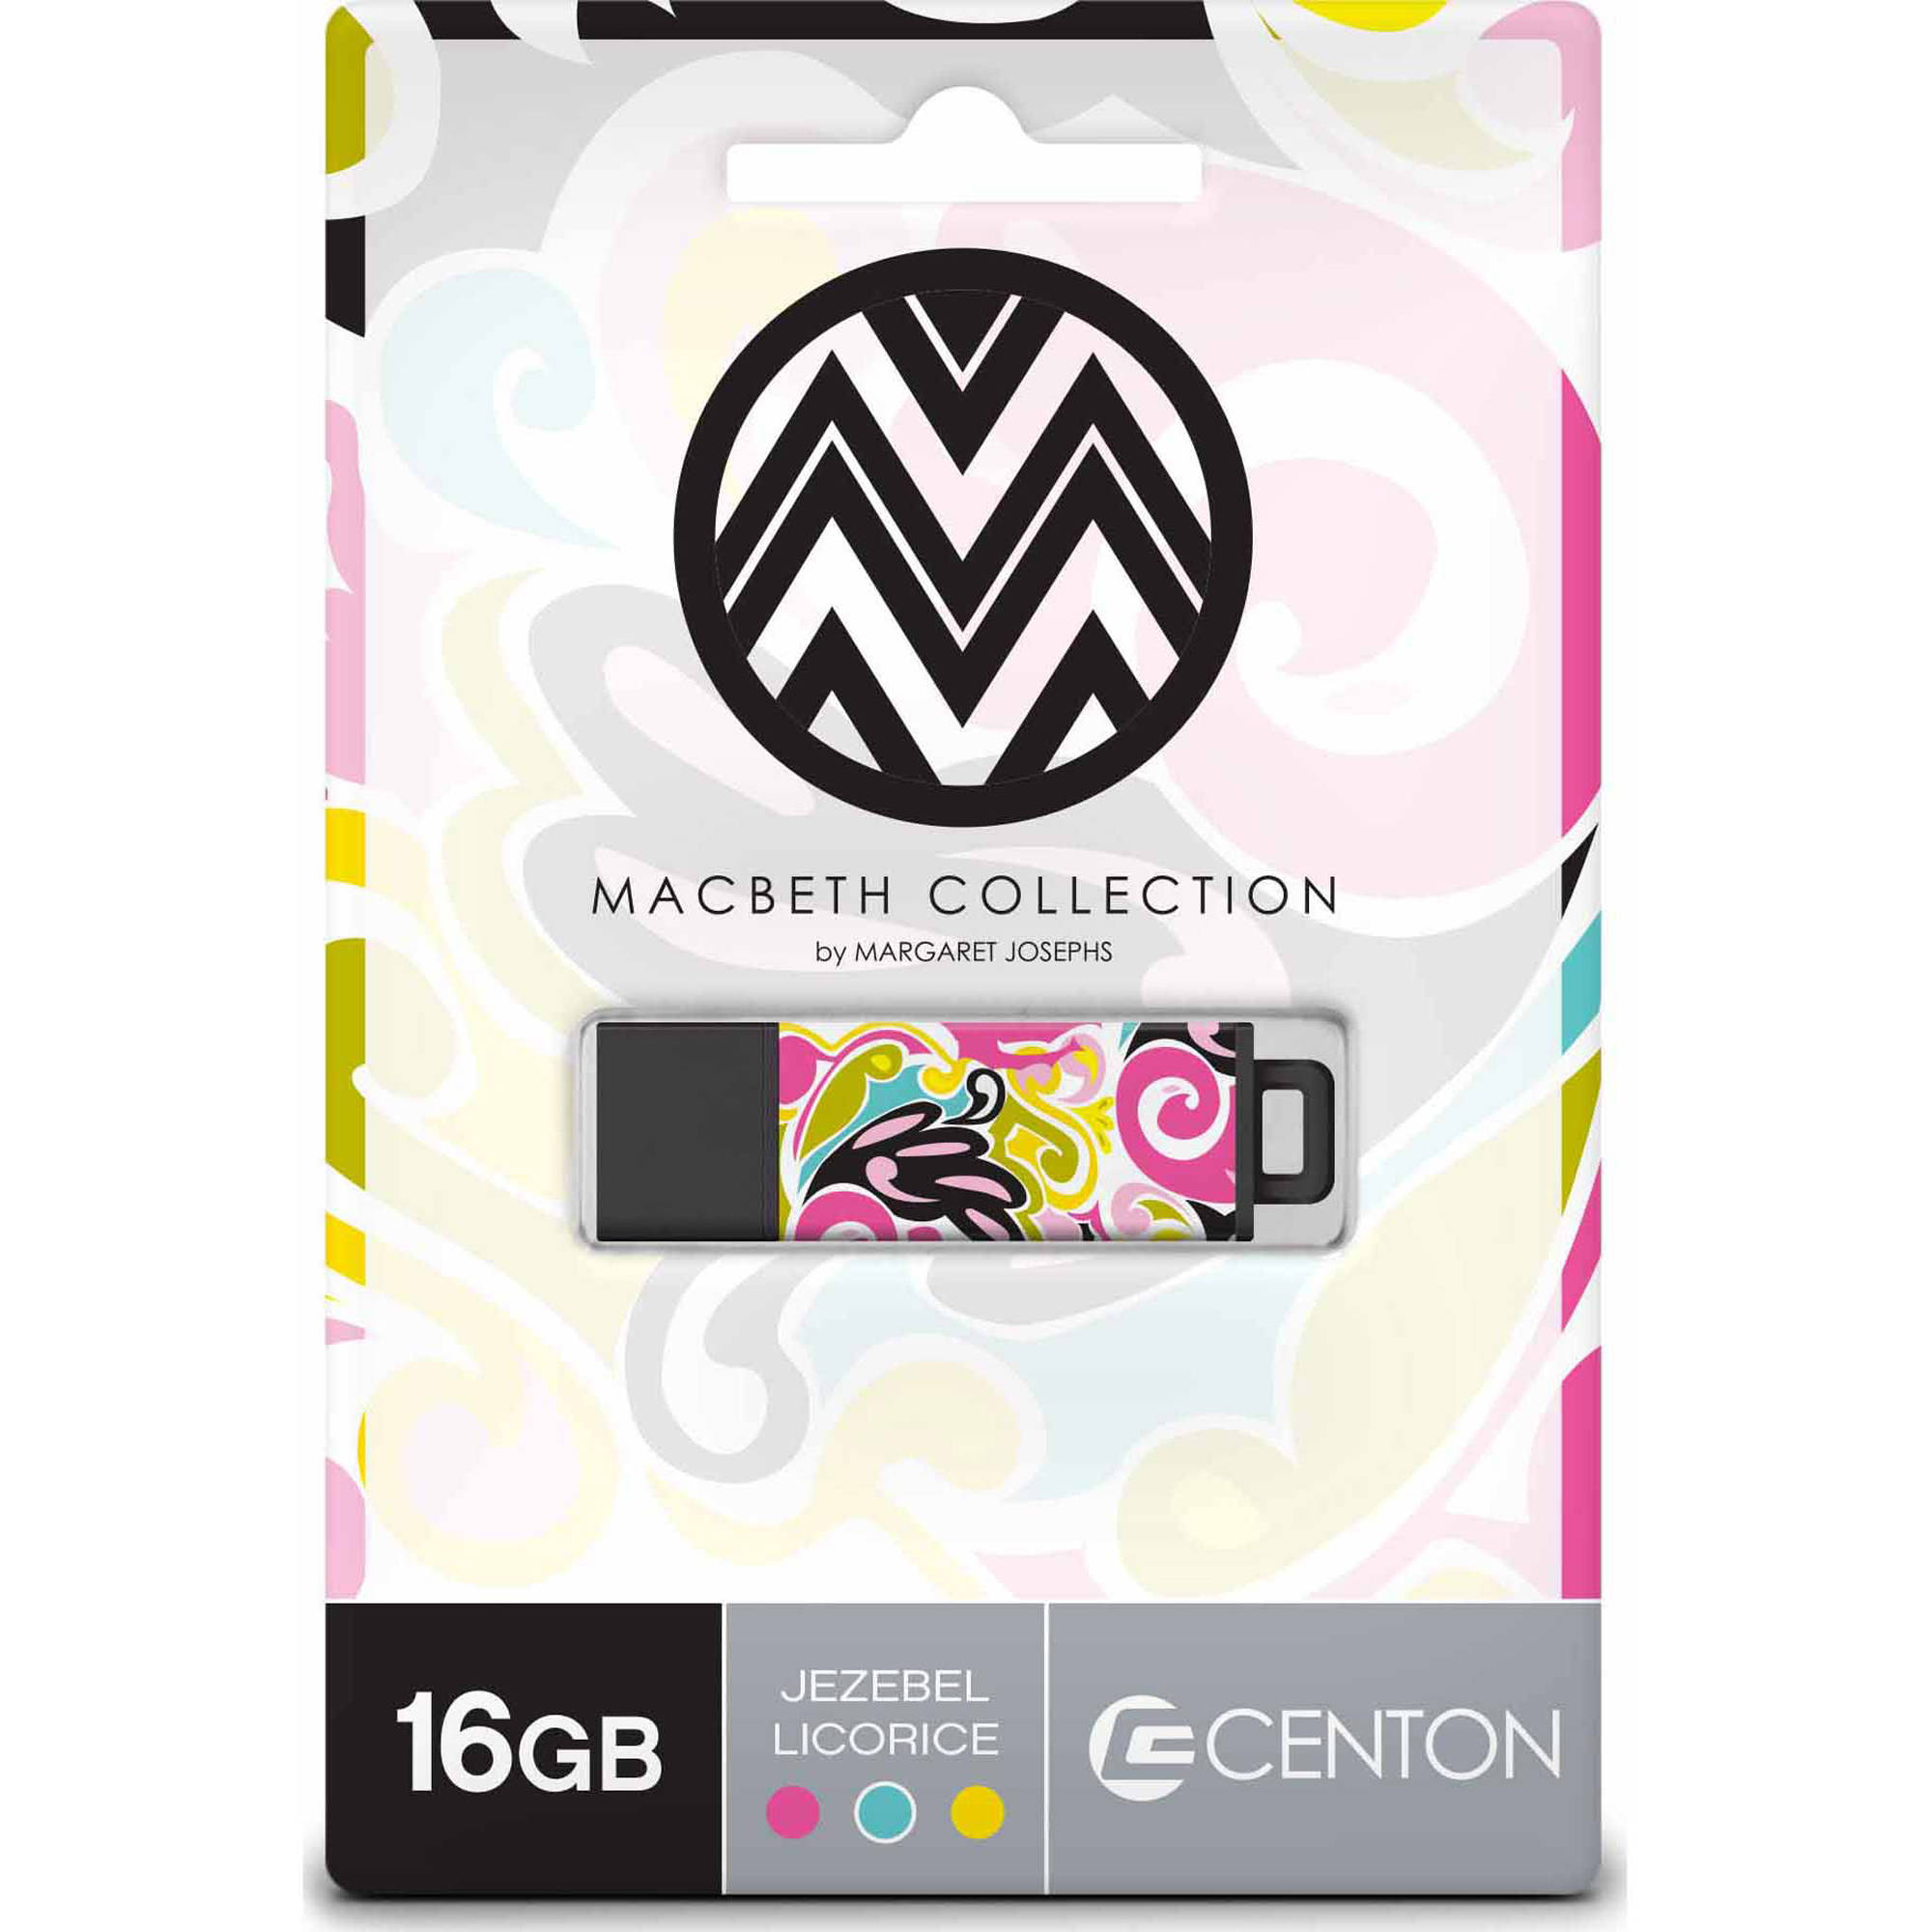 Centon 16GB PRO2 Macbeth USB Flash Drive, Jezebel Licorice